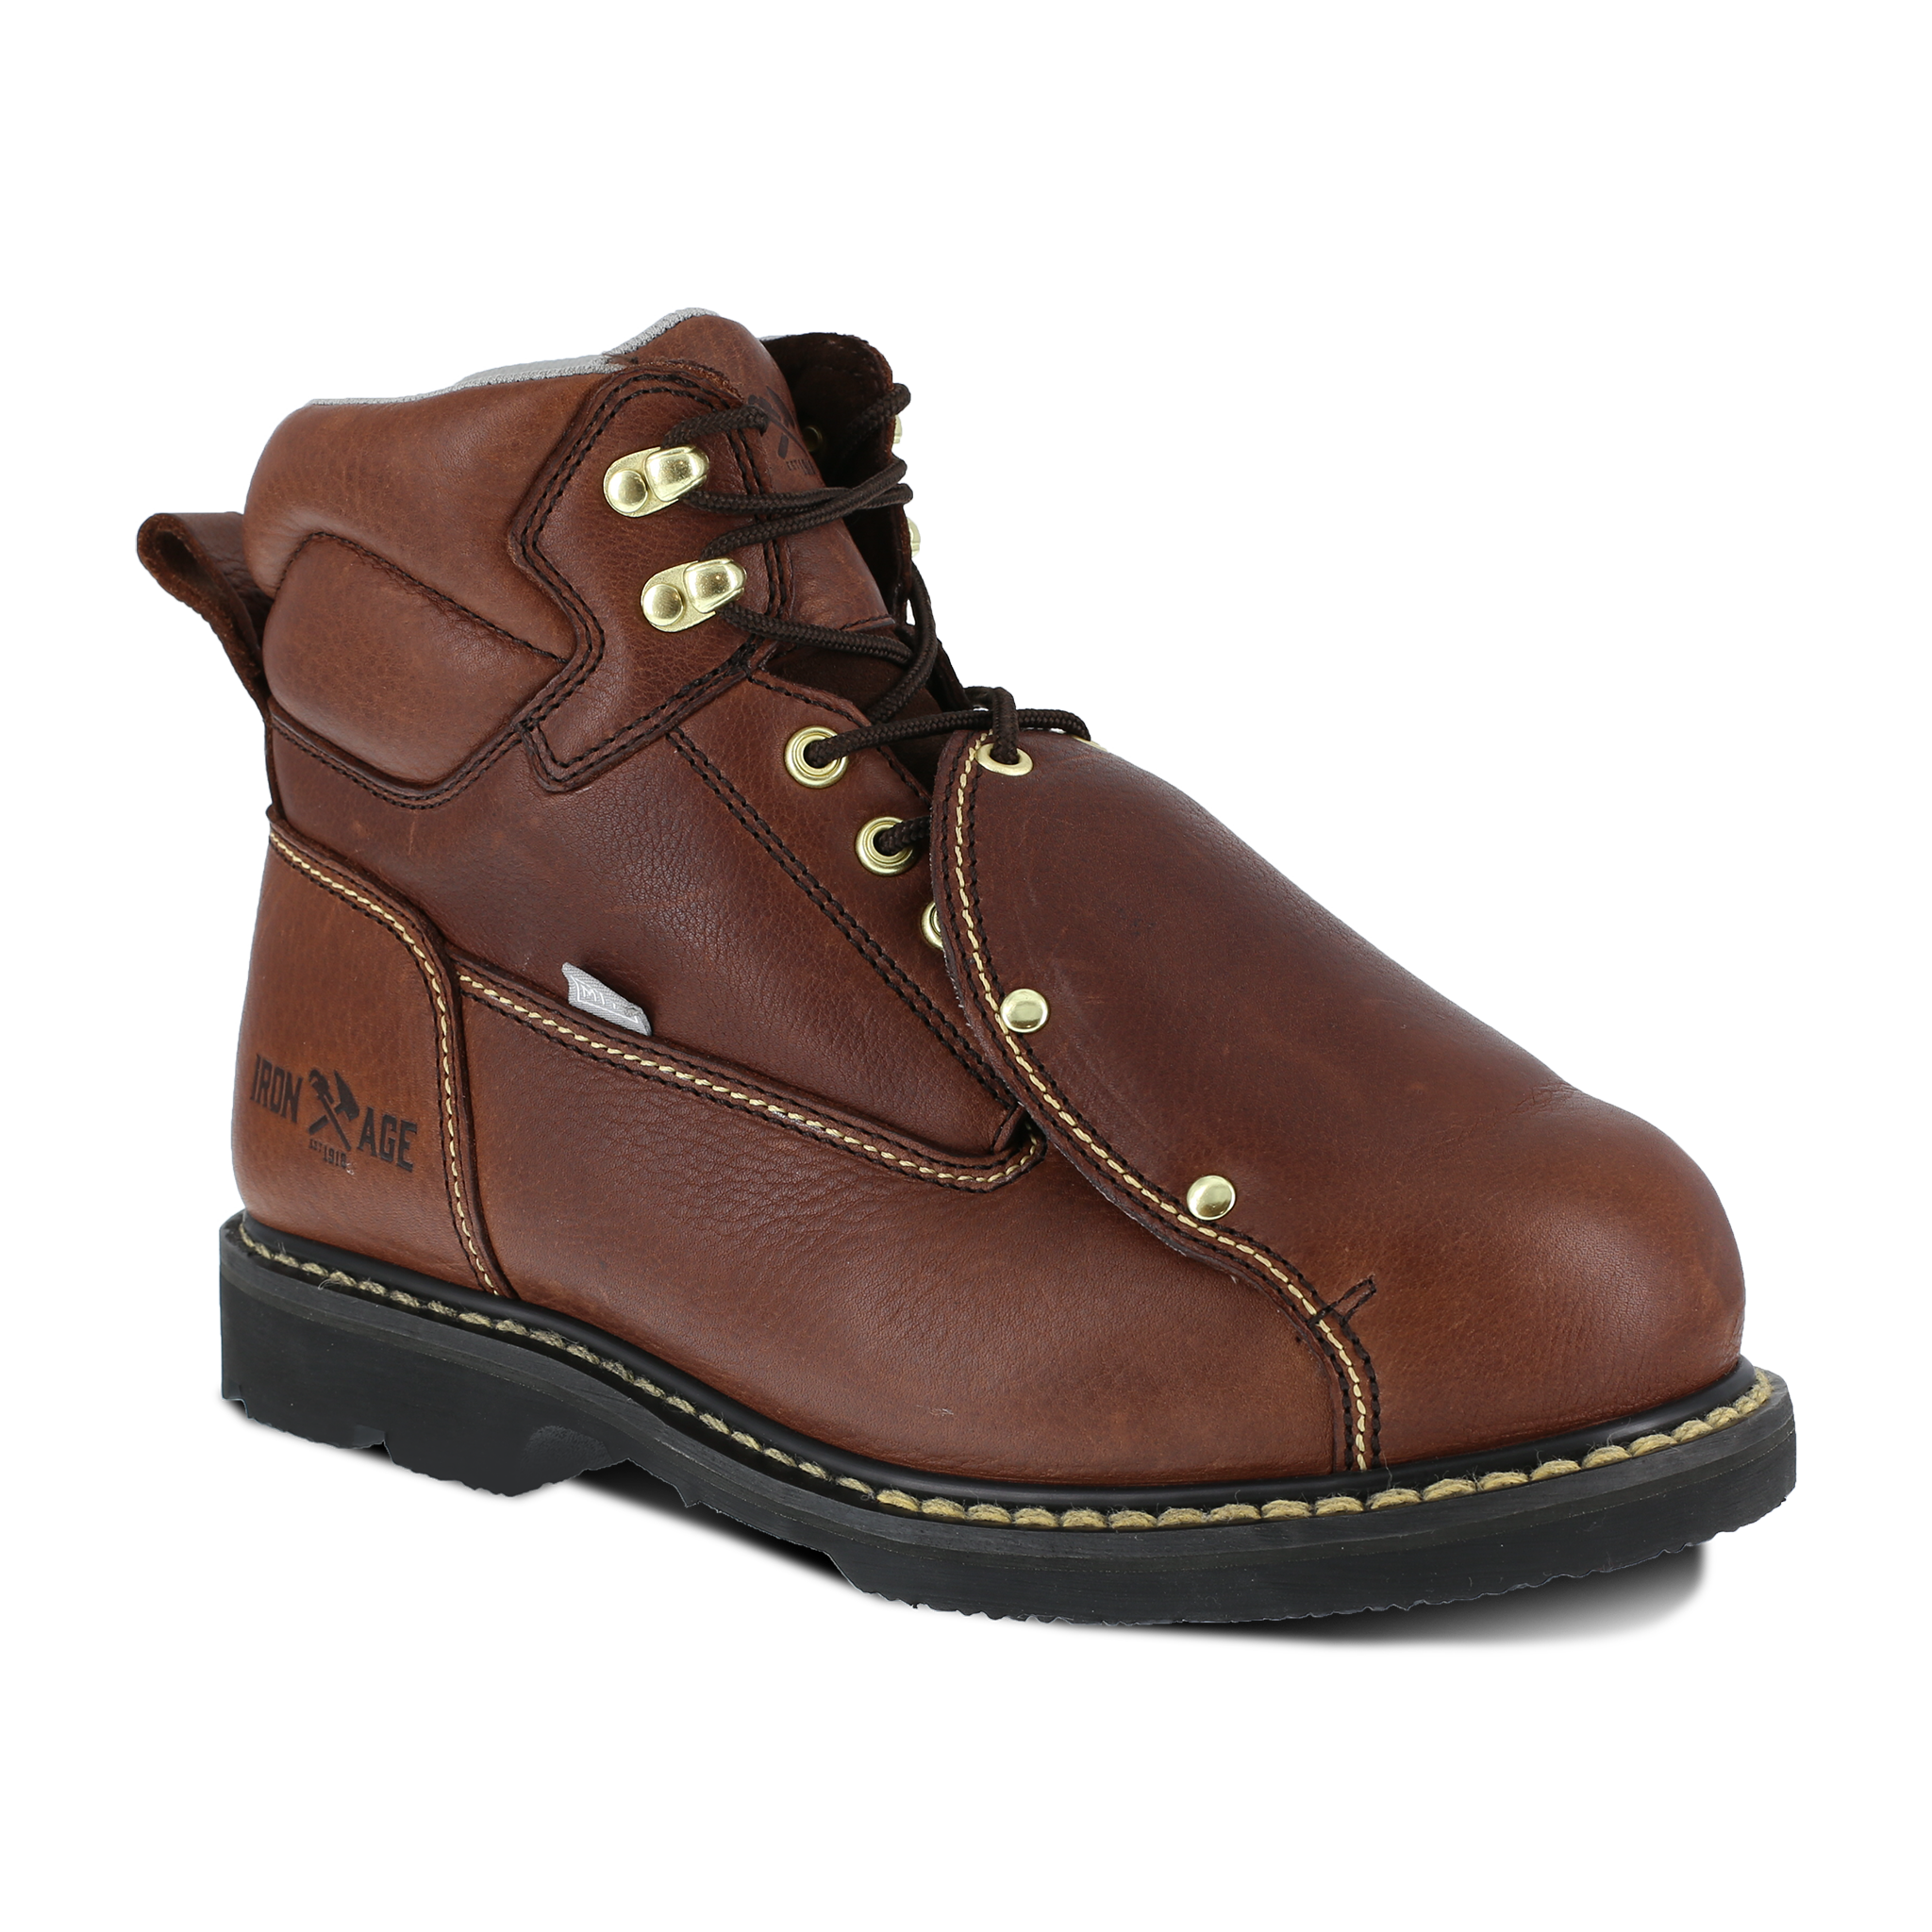 "Iron Age Men's Groundbreaker 6"" Work Boot with External Met Guard - IA5017"